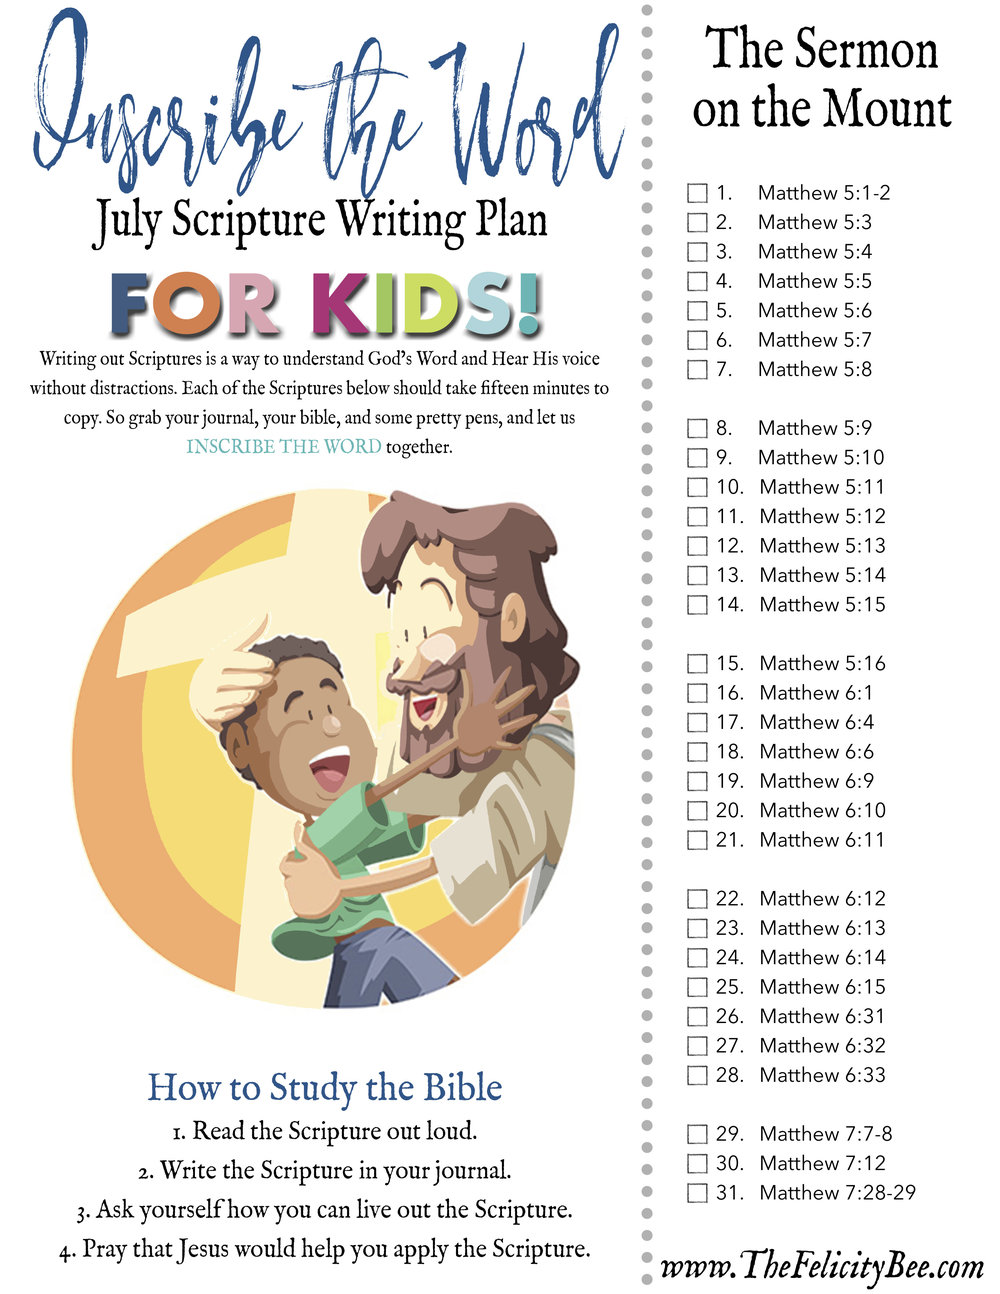 CLICK HERE  to download your July Scripture Writing Plan for Kids!